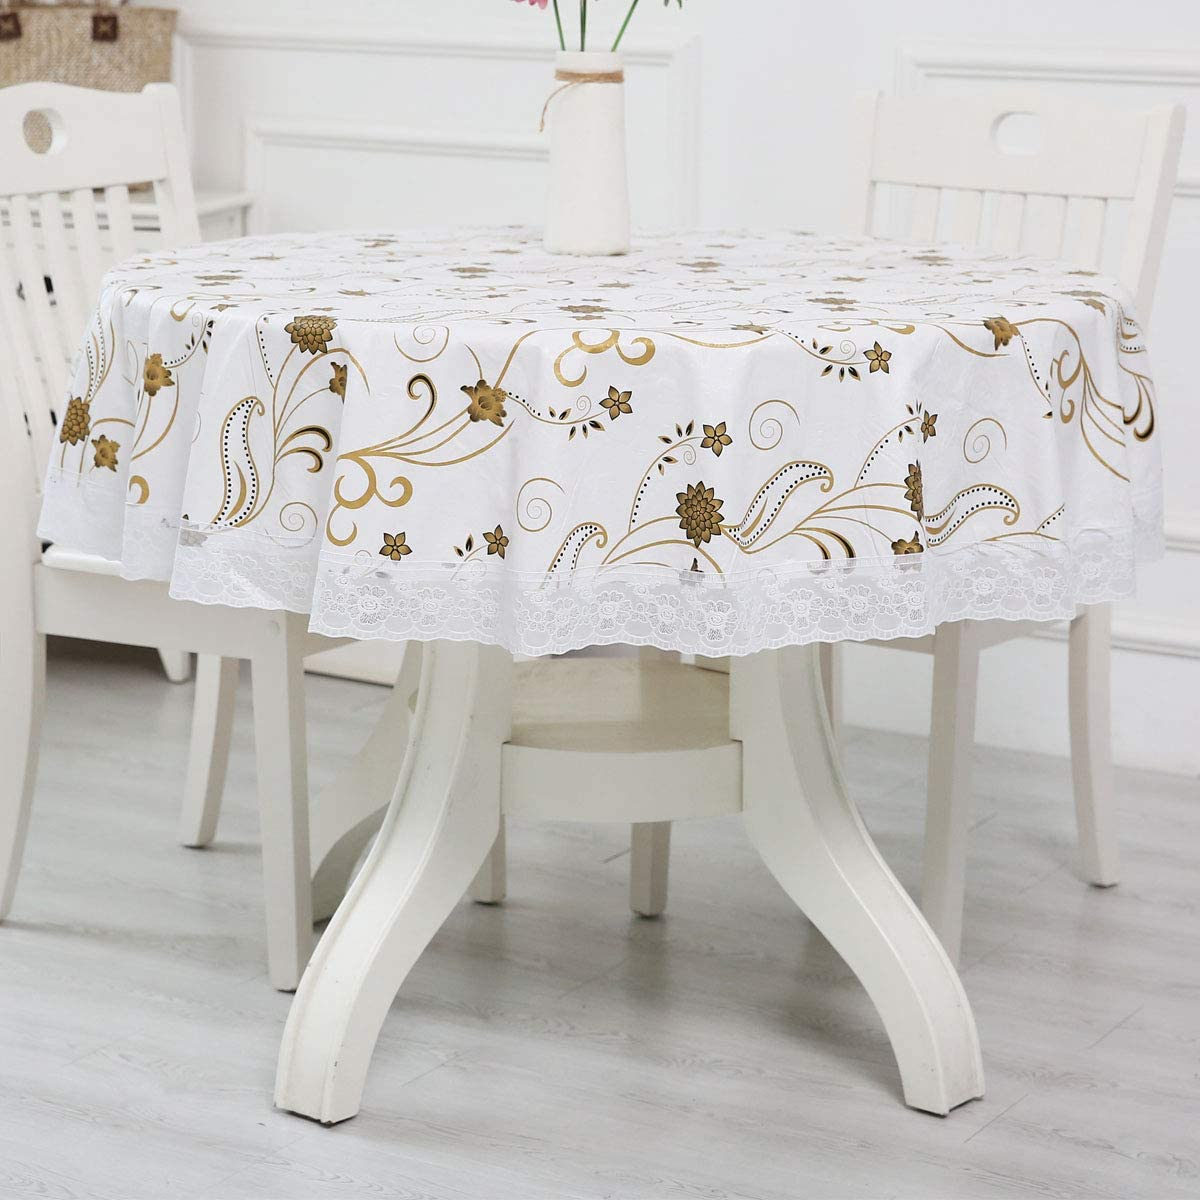 LOHASCASA Round Vinyl Oilcloth Lace Tablecloth Waterproof PVC Plastic Spillproof Peva Heavy Duty Farm Oil Proof Wipeable Tablecloth for Luau White+Gold Floral 60 Inch